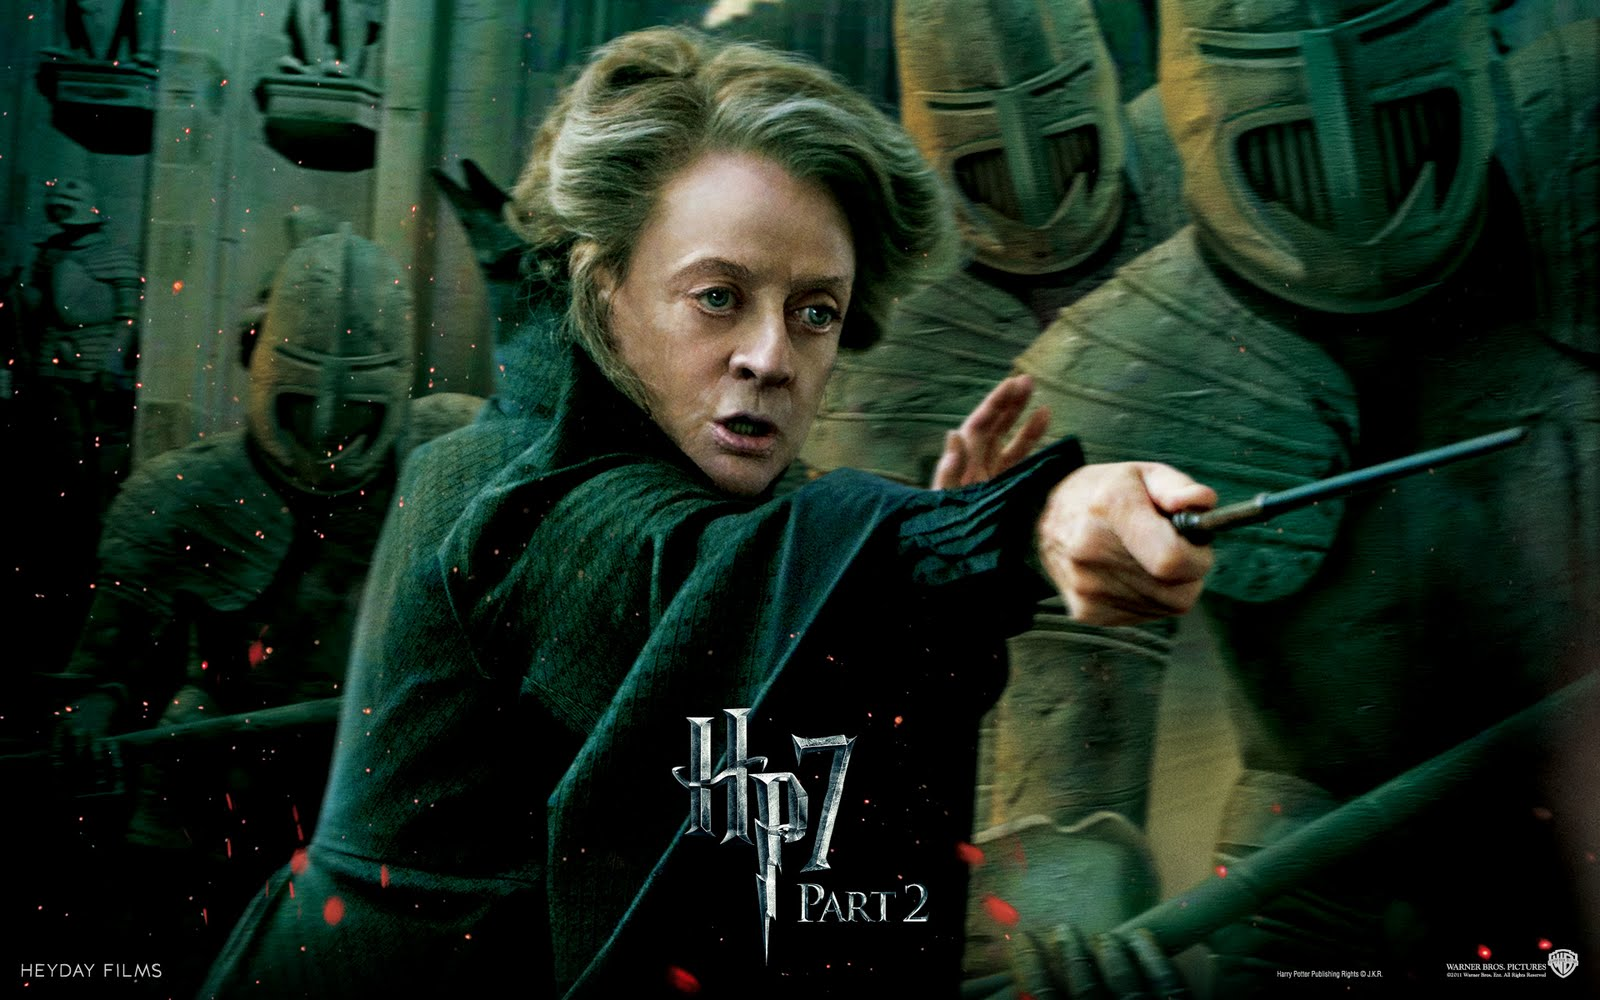 http://4.bp.blogspot.com/-w3IENvzBKWc/Tieb-20kLsI/AAAAAAAACGk/gkMTNaLR8nI/s1600/Harry-Potter-and-the-Deathly-Hallows-Part-2-Wallpaper-HD-11.jpg